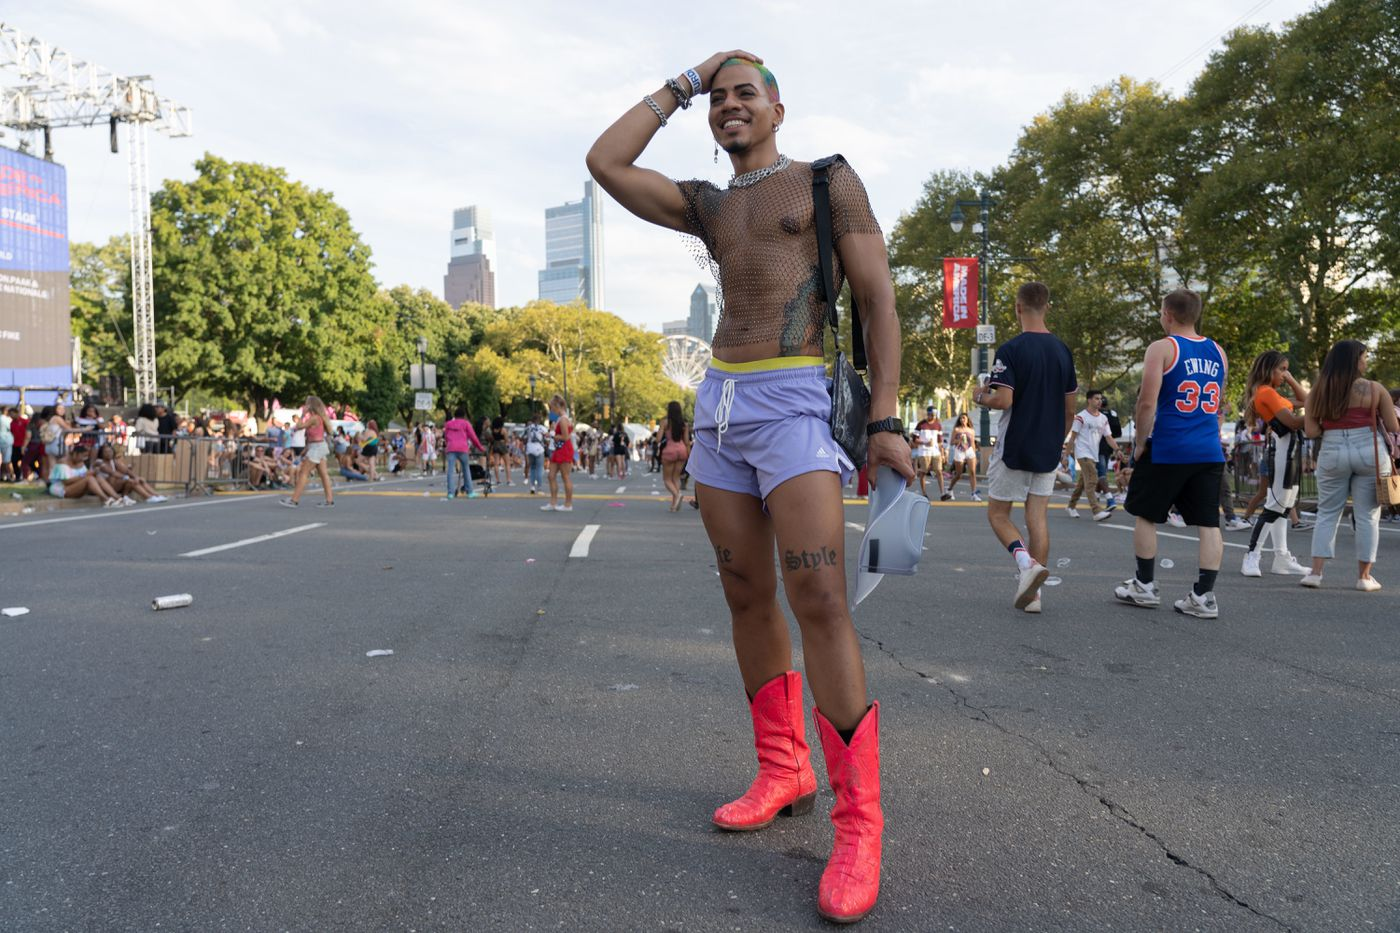 """Ivemil Polando, 28, from New York wearing his outfit from a thrift store and is here """" to keep the party going"""" at Made in America Festival on Benjamin Franklin Parkway in Center City, Philadelphia on Saturday, August 31, 2019."""